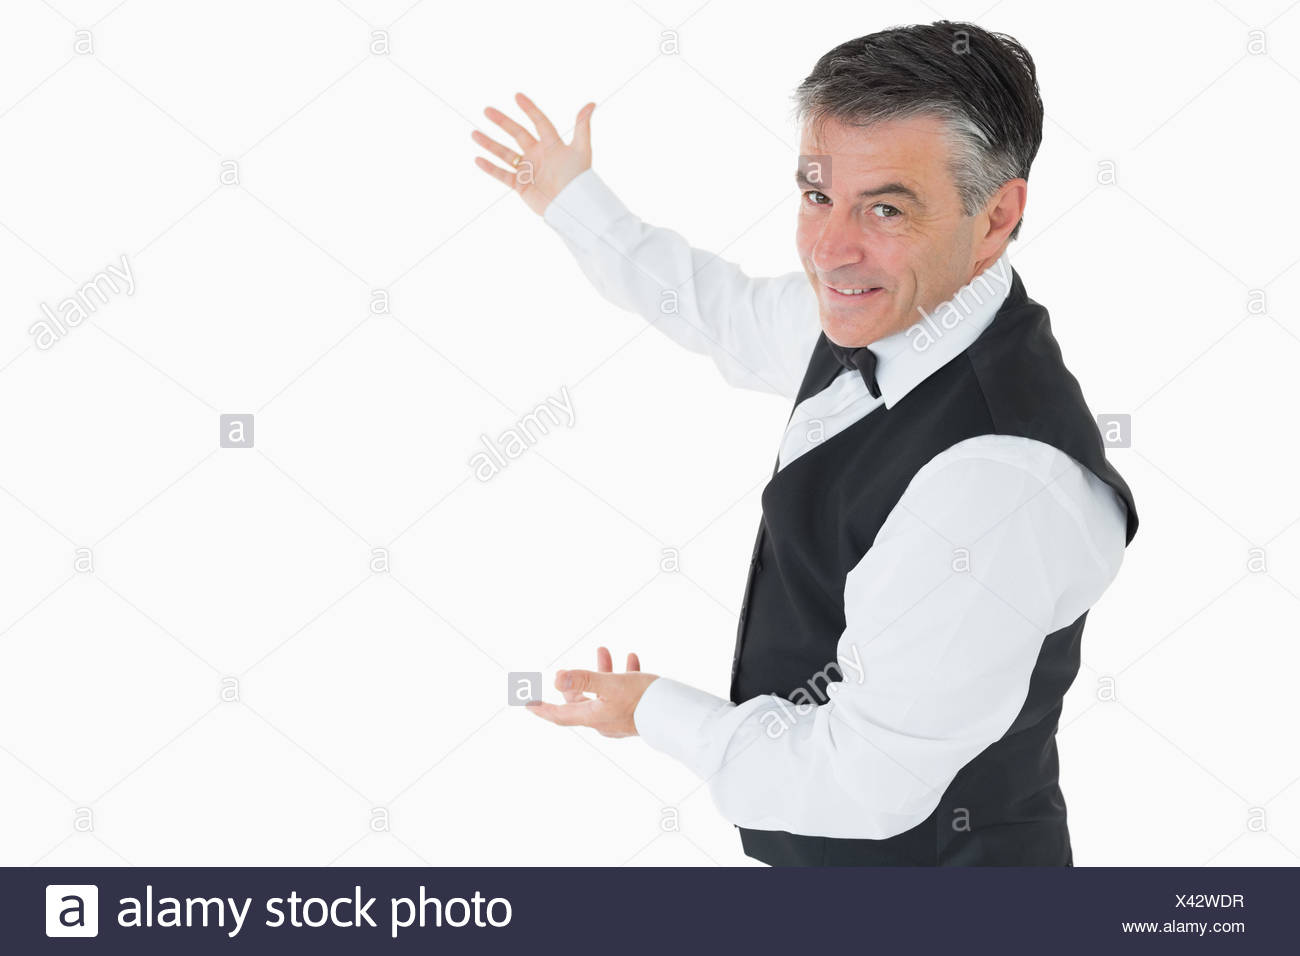 Well-dressed man showing us something - Stock Image